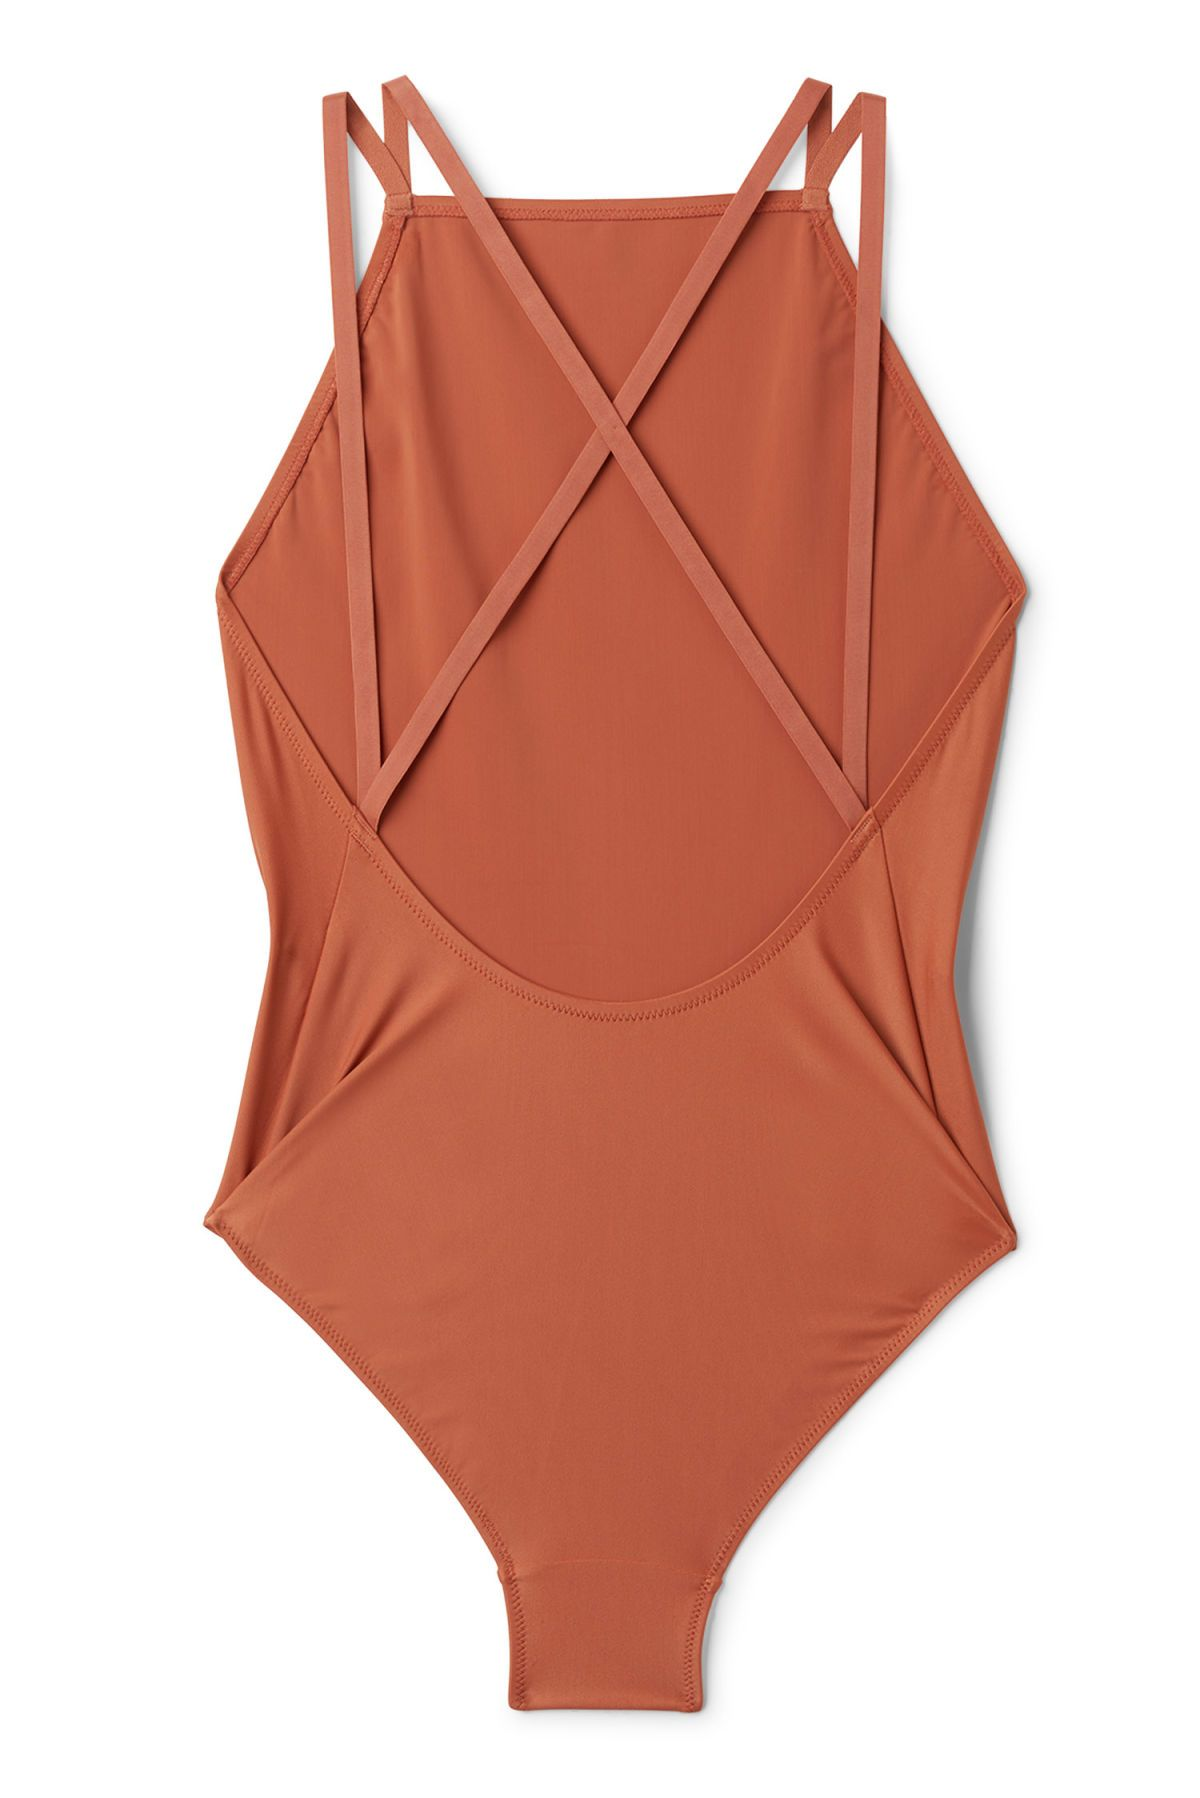 a73a77dd48 Polaris Swimsuit - Orange - One pieces - Weekday GB